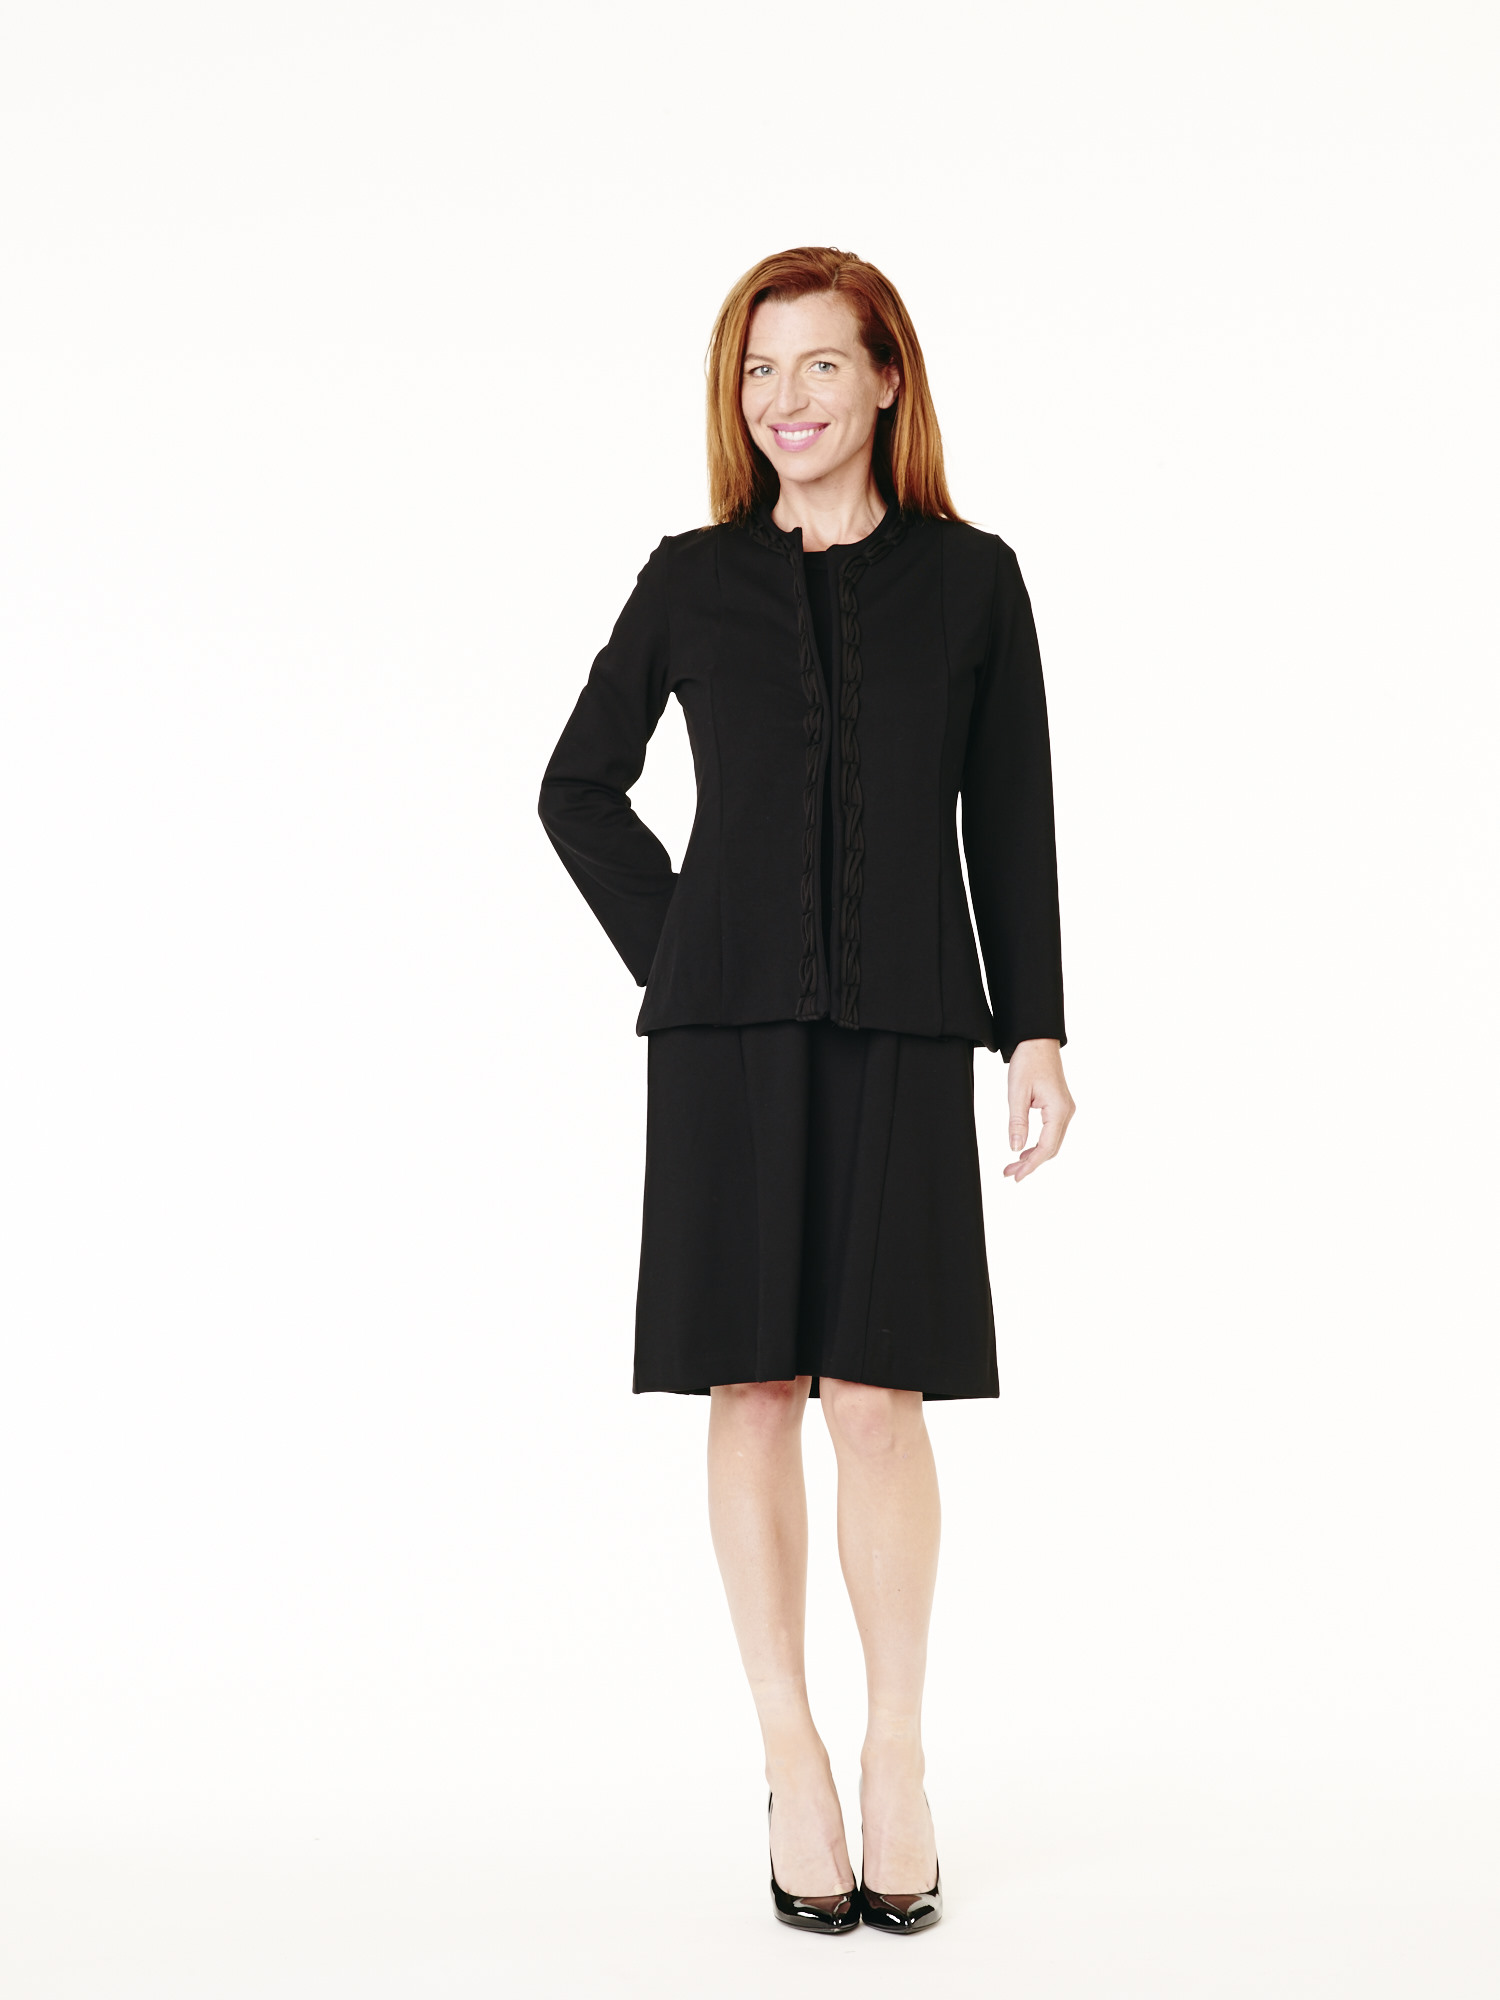 Camilla Olson 2-11-15 01_Gaby_Jacket_Cage_Dress_0002.jpg